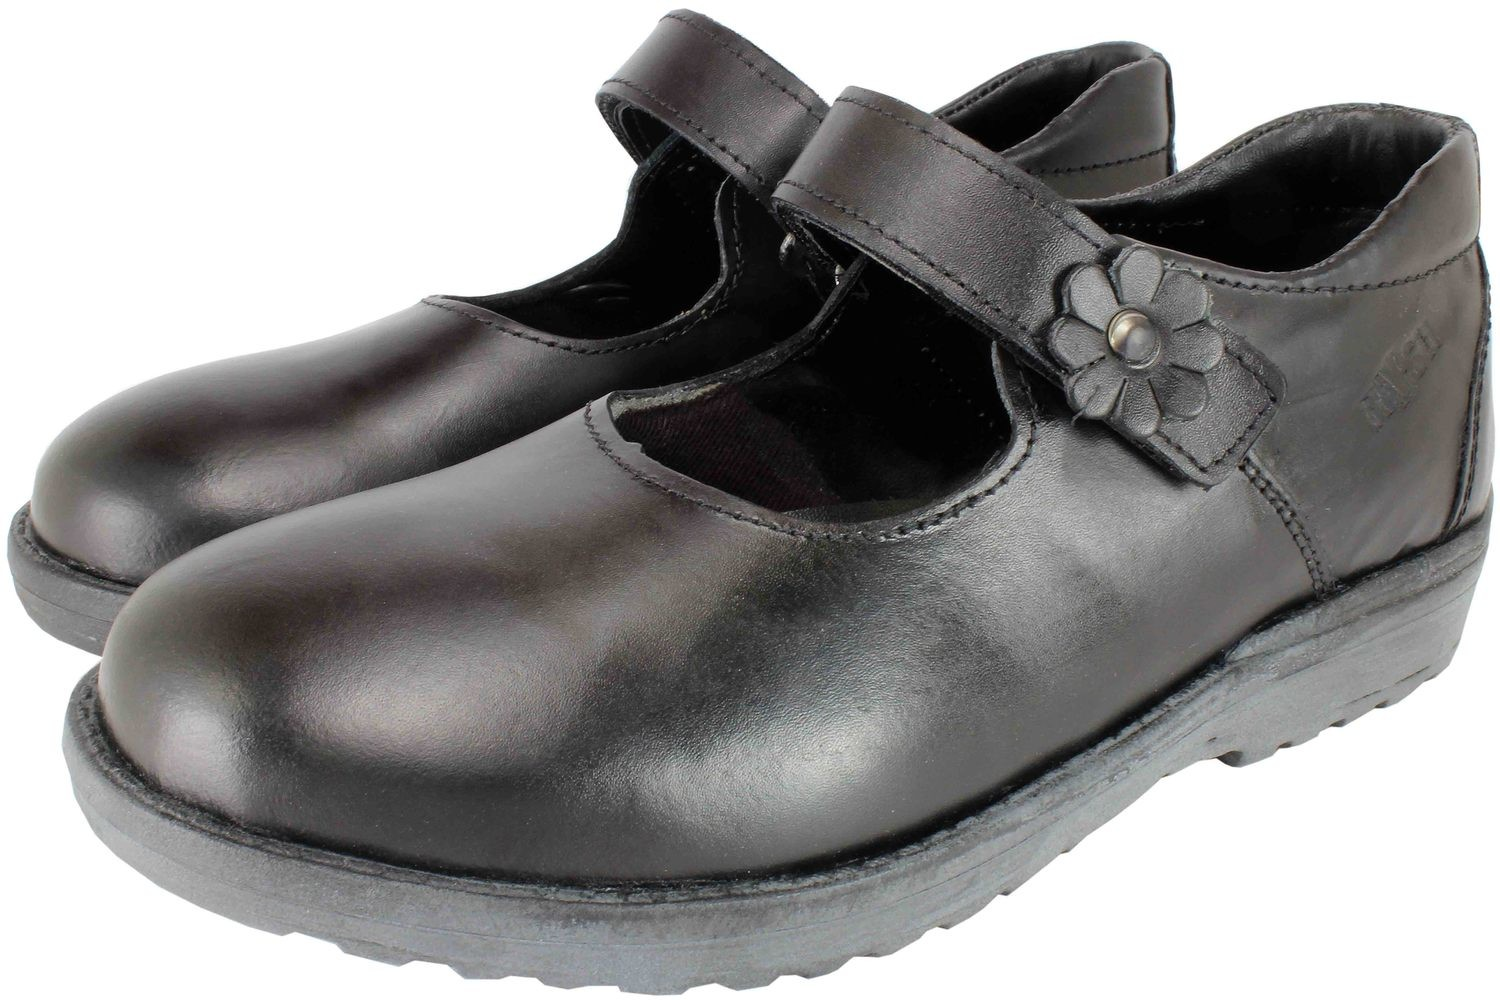 Girls SHOES Genuine Leather Black - SUGGESTED RETAIL PRICE $30.00 - WHOLESALE PRICE $14